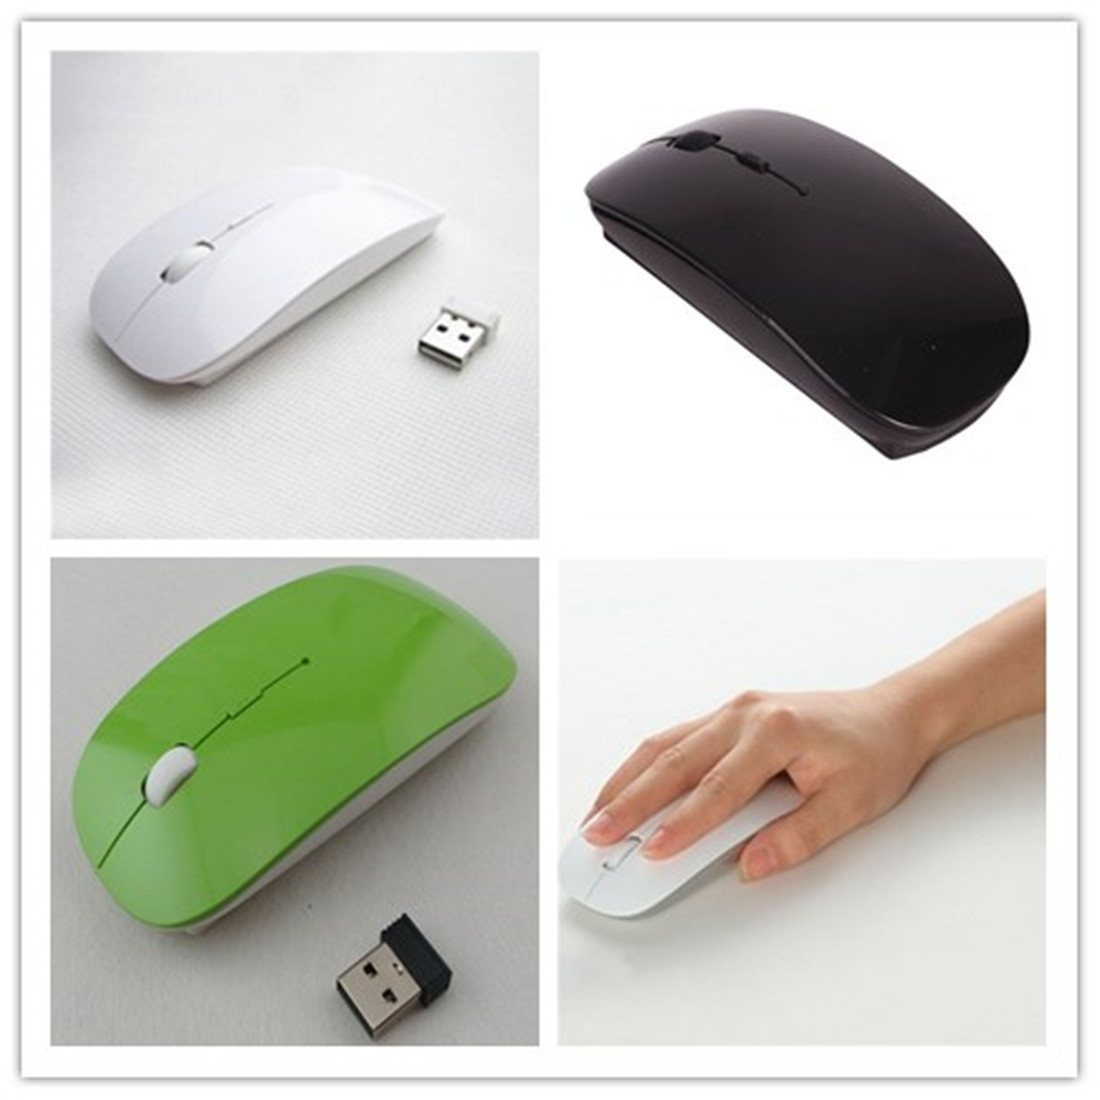 Slim, ergonomically-designed 2.4 GHz wireless mouse, ideal for home or office use 2. Compatible with most laptop and desktop computers via USB receiver ...